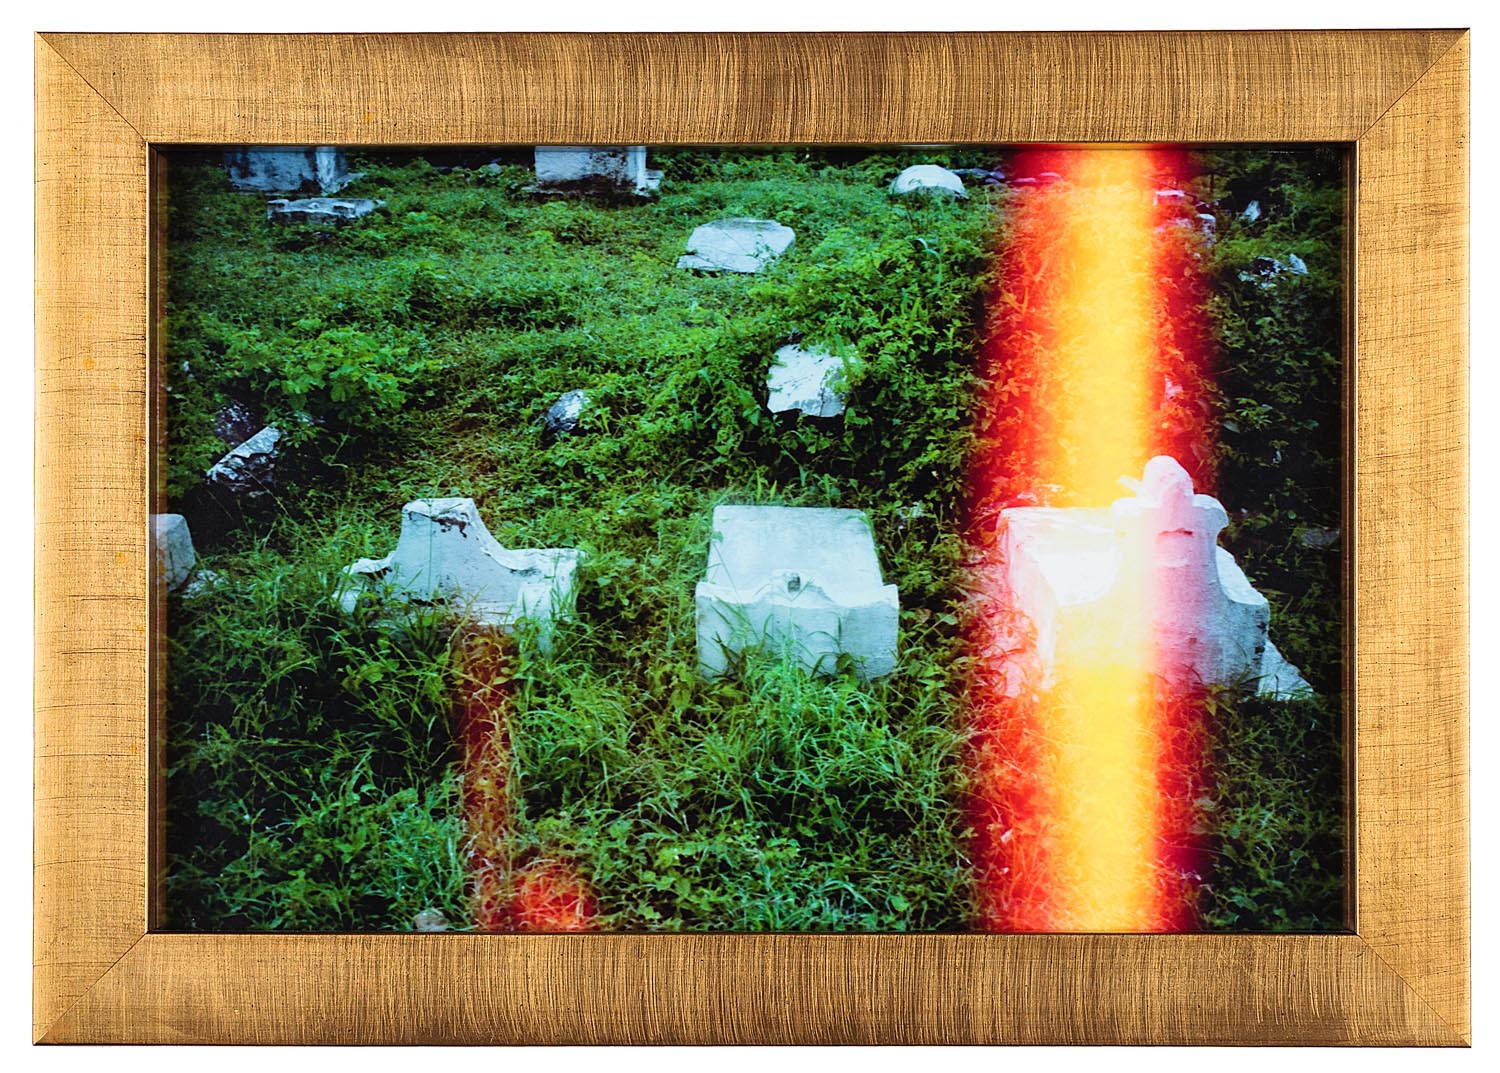 Graves/End of Roll